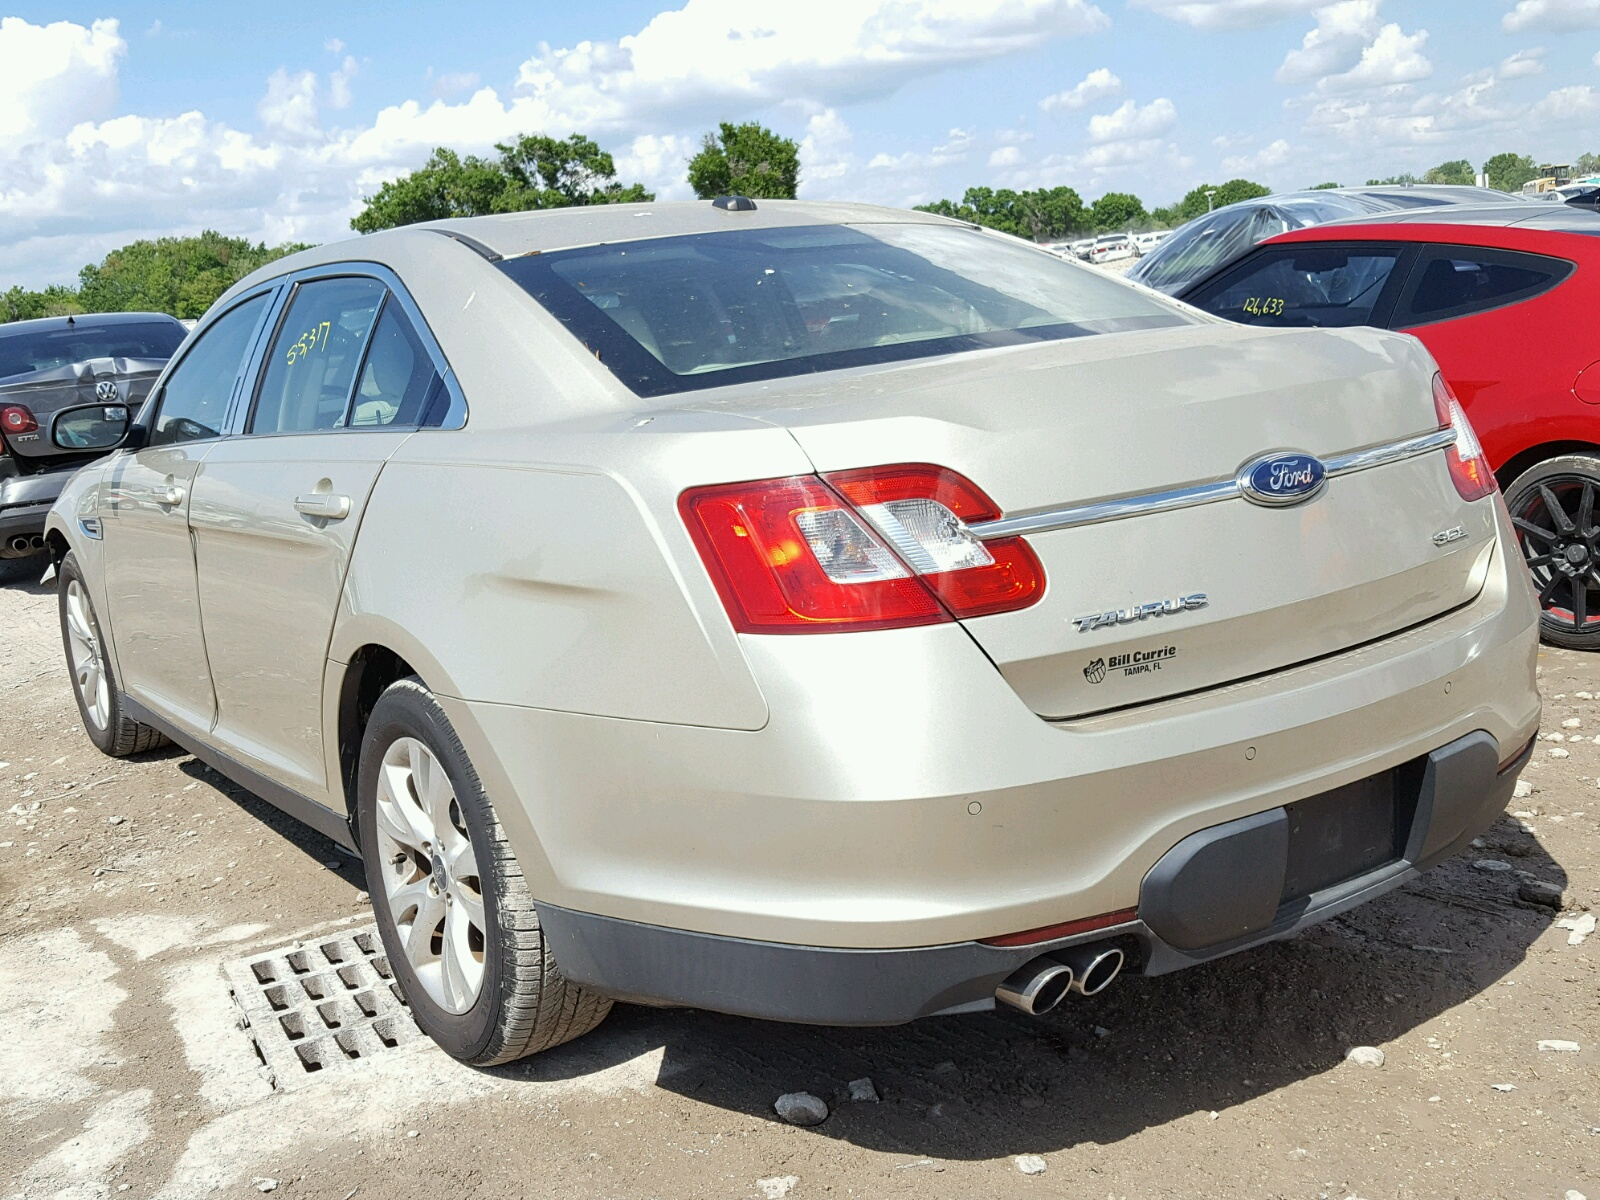 2010 Ford Taurus Sel Front End Damage 1FAHP2EW6AG Sold